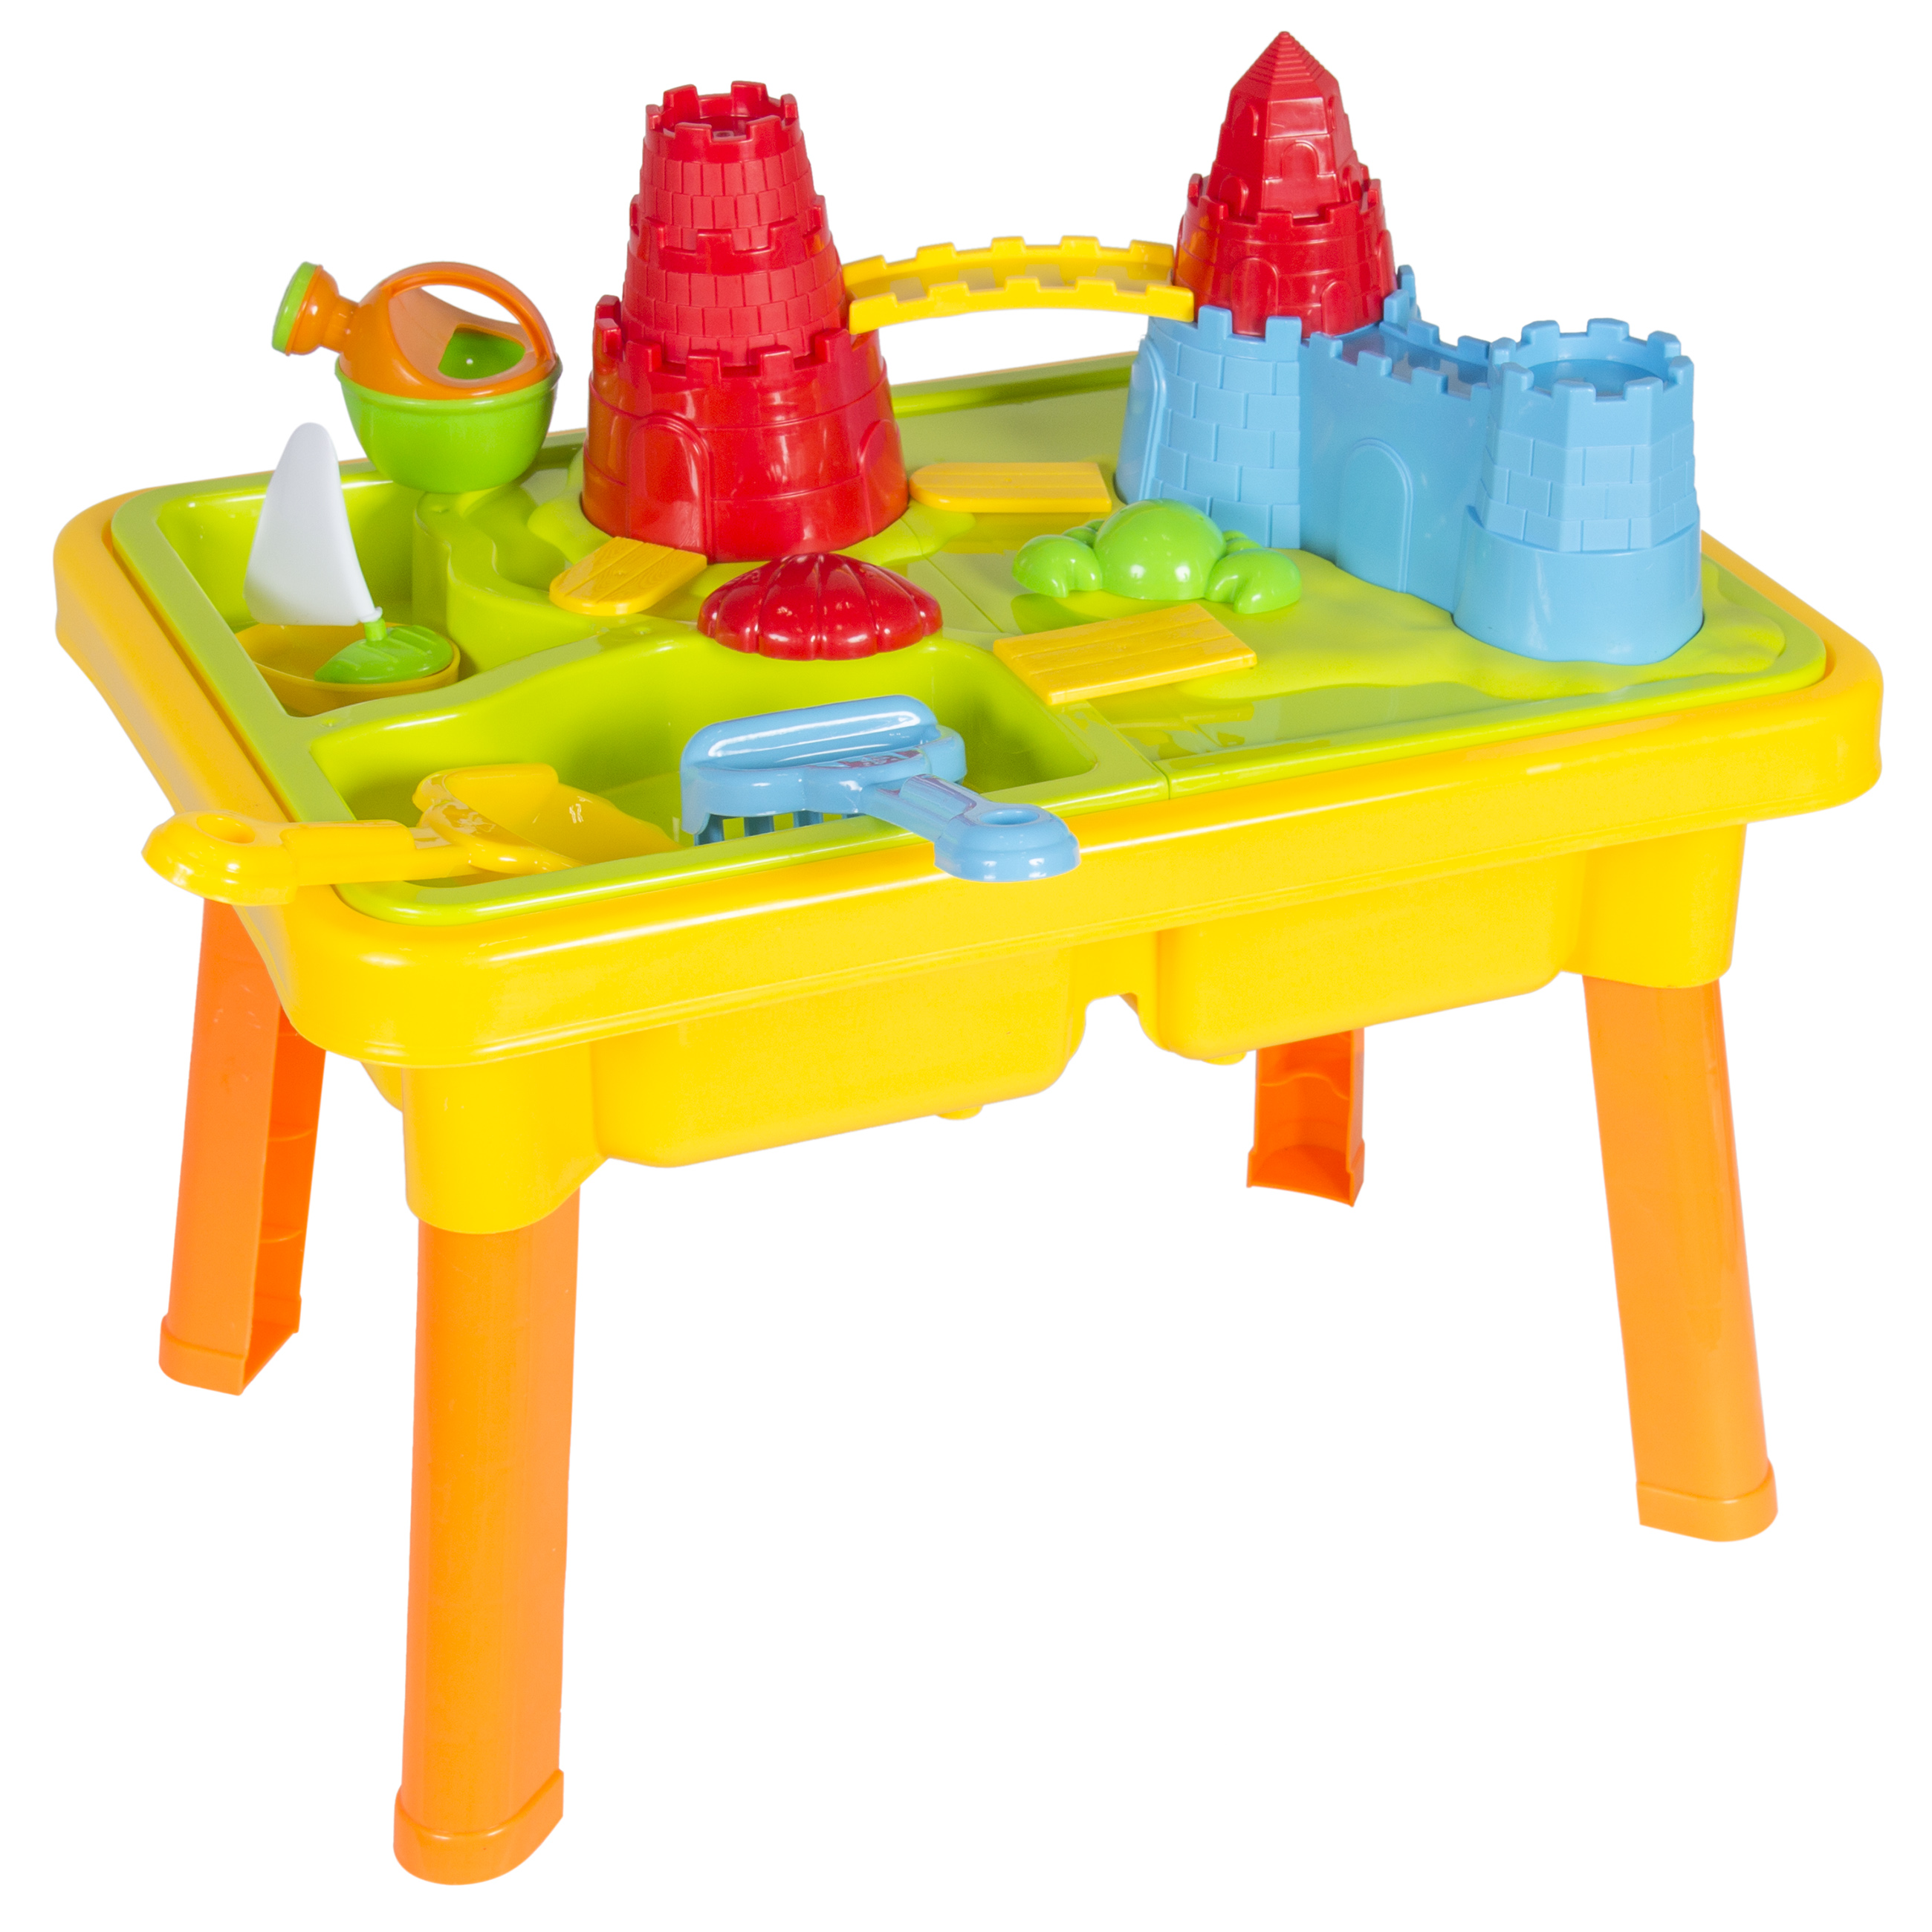 BCP Castle Sandbox 2 IN 1 Sand and Water Table W/ Beach Play Set Kids Child Play